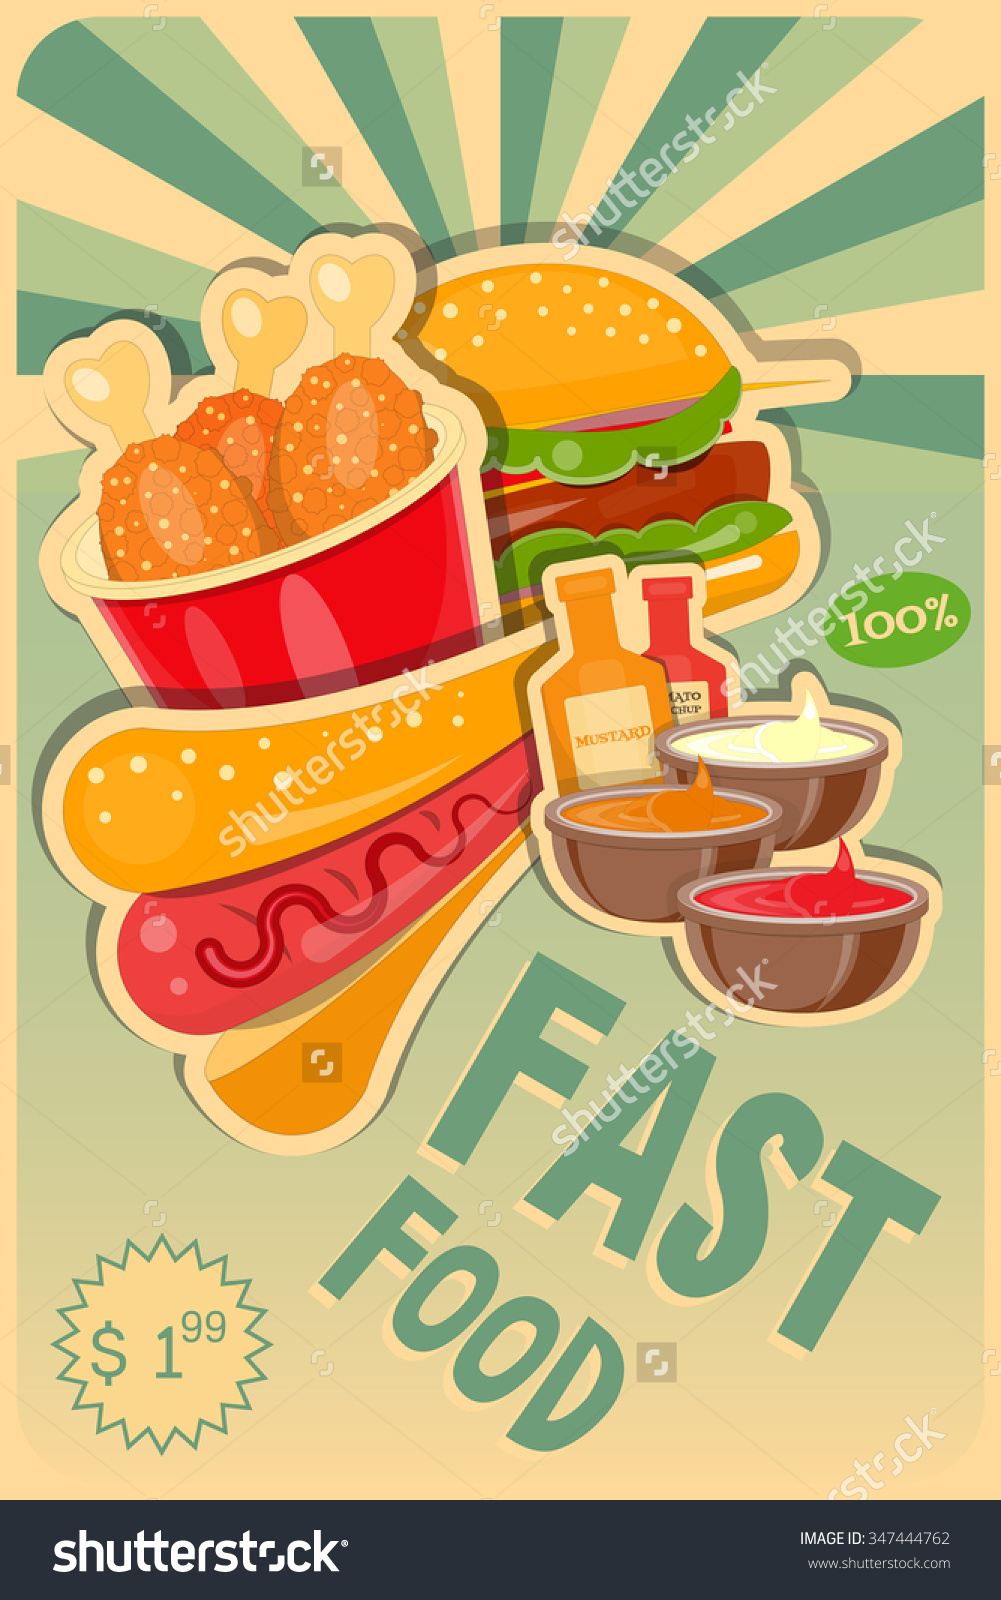 Fast Food Poster Burgers Hot Dog Stock Vector 347444762.